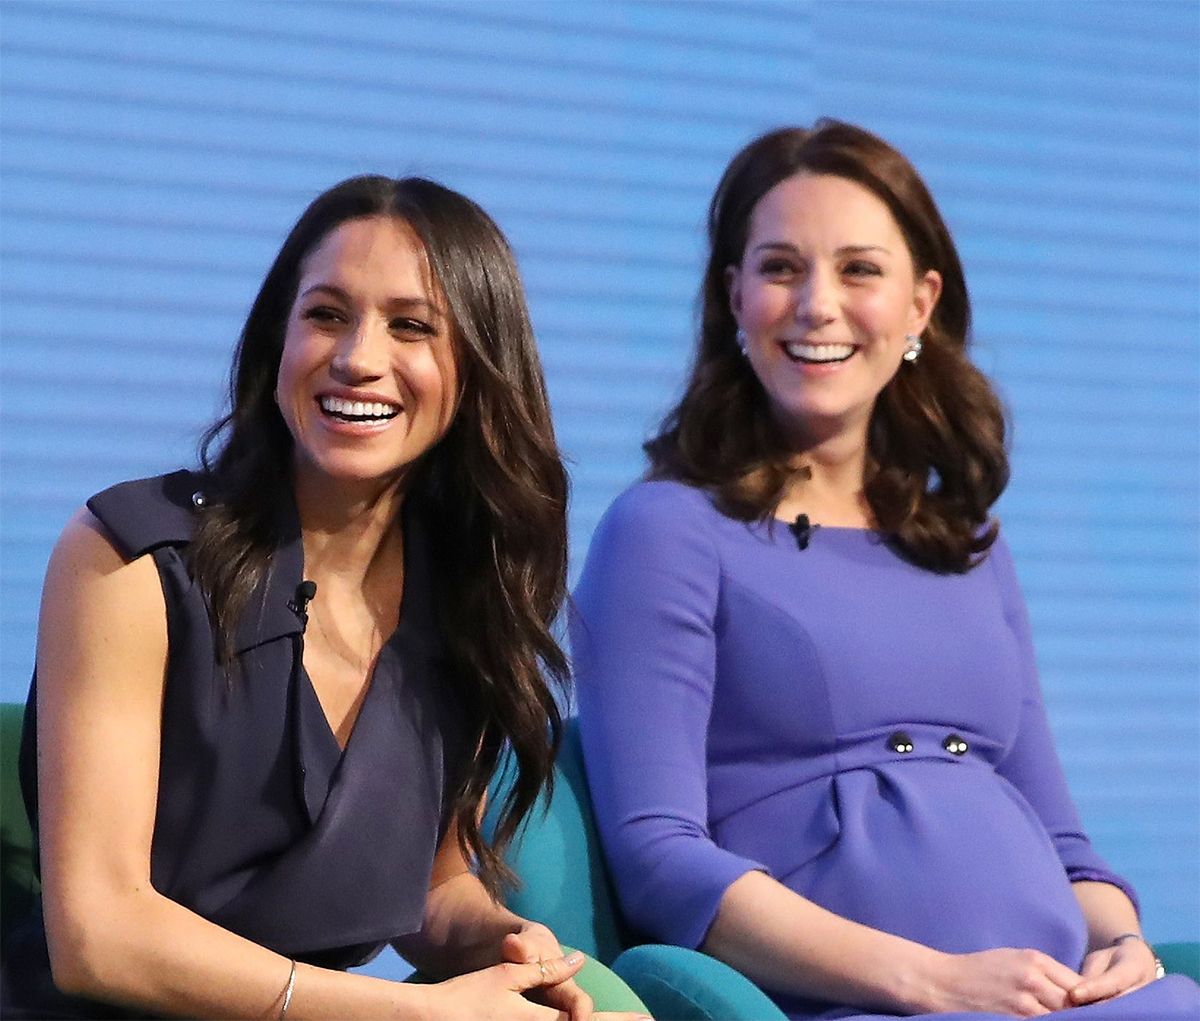 Meghan Markle and Duchess of Cambridge Catherine (Kate Middleton) at the Inaugural Royal Foundation Forum on February 28, 2018 in London, England.